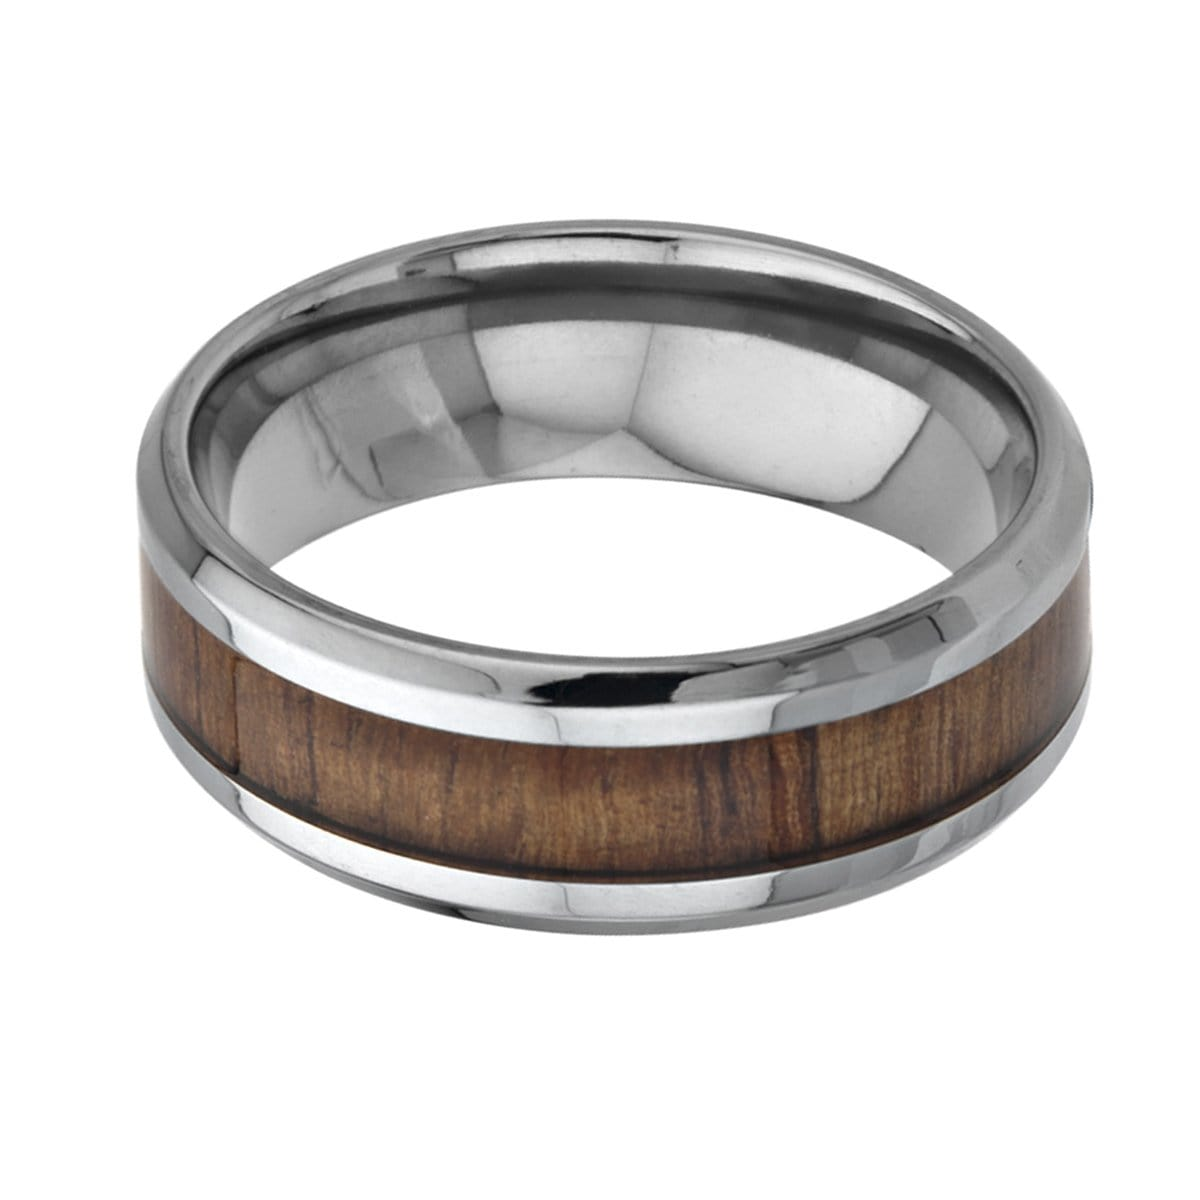 Silver Titanium with Inlaid Koa Wood Band Rings